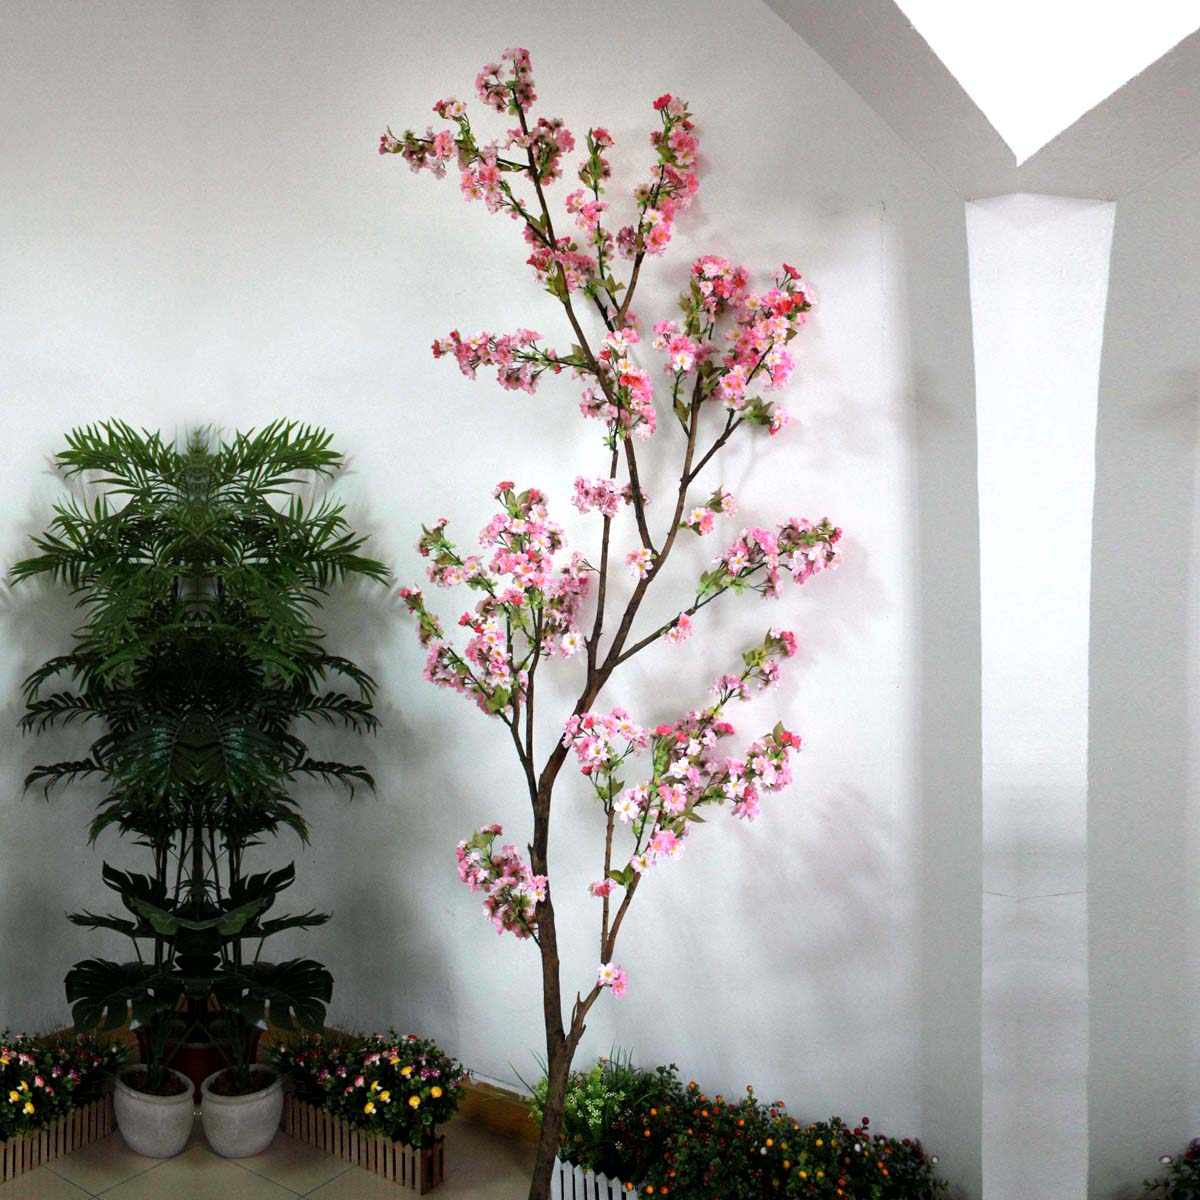 Gnw Bls020 Artificial Cherry Blossom Tree Branch For Decoration